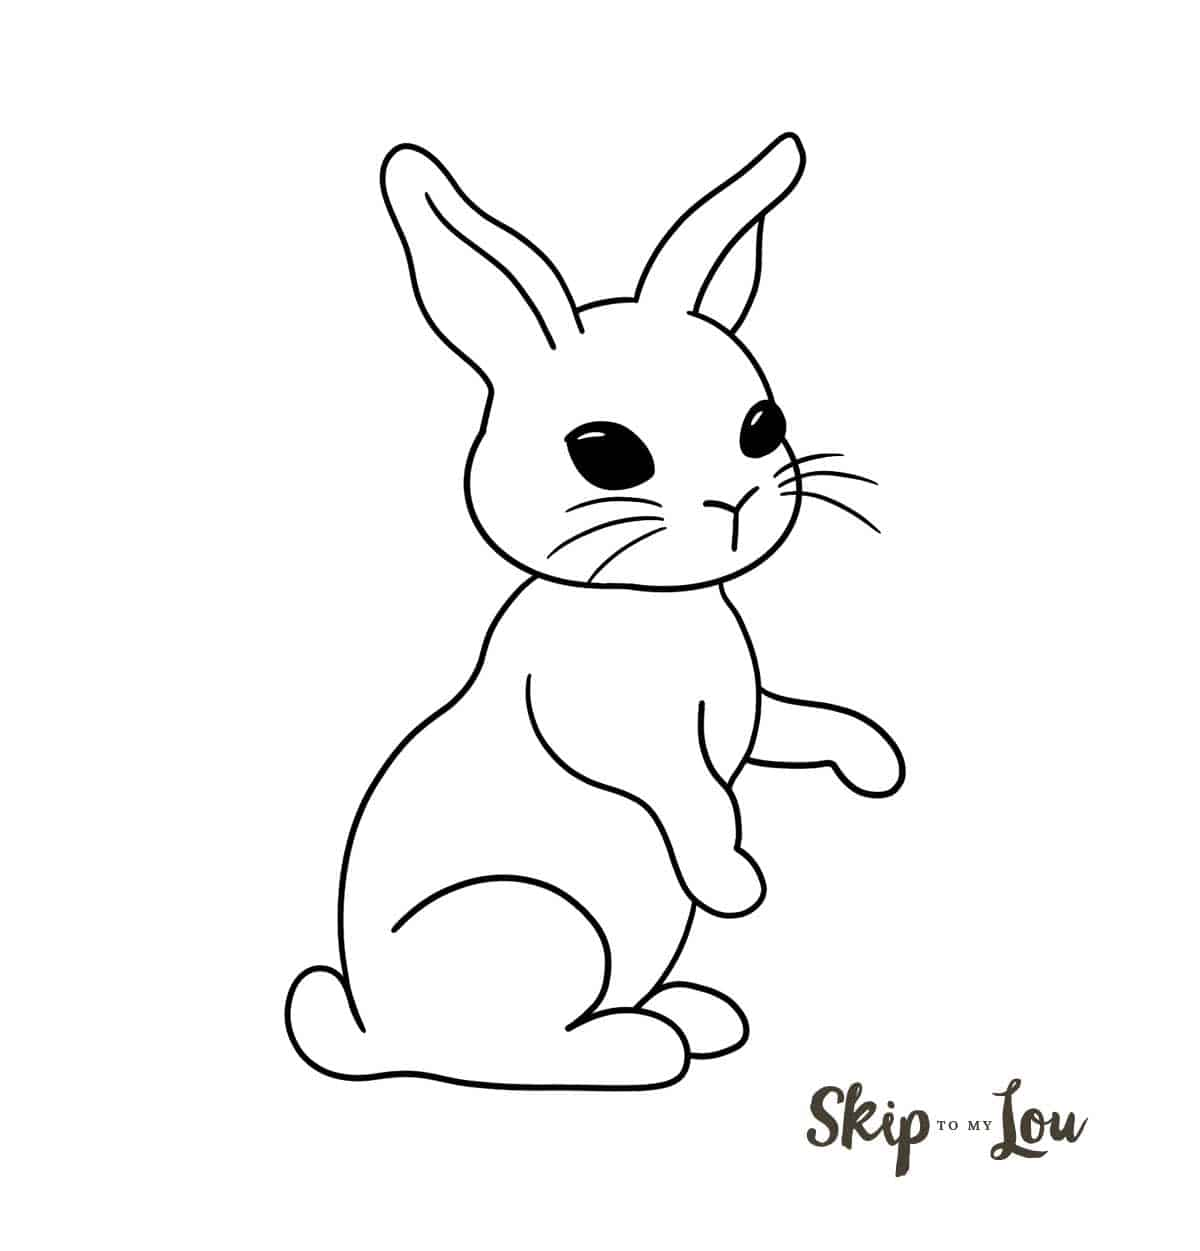 How to Draw a Bunny | Skip To My Lou